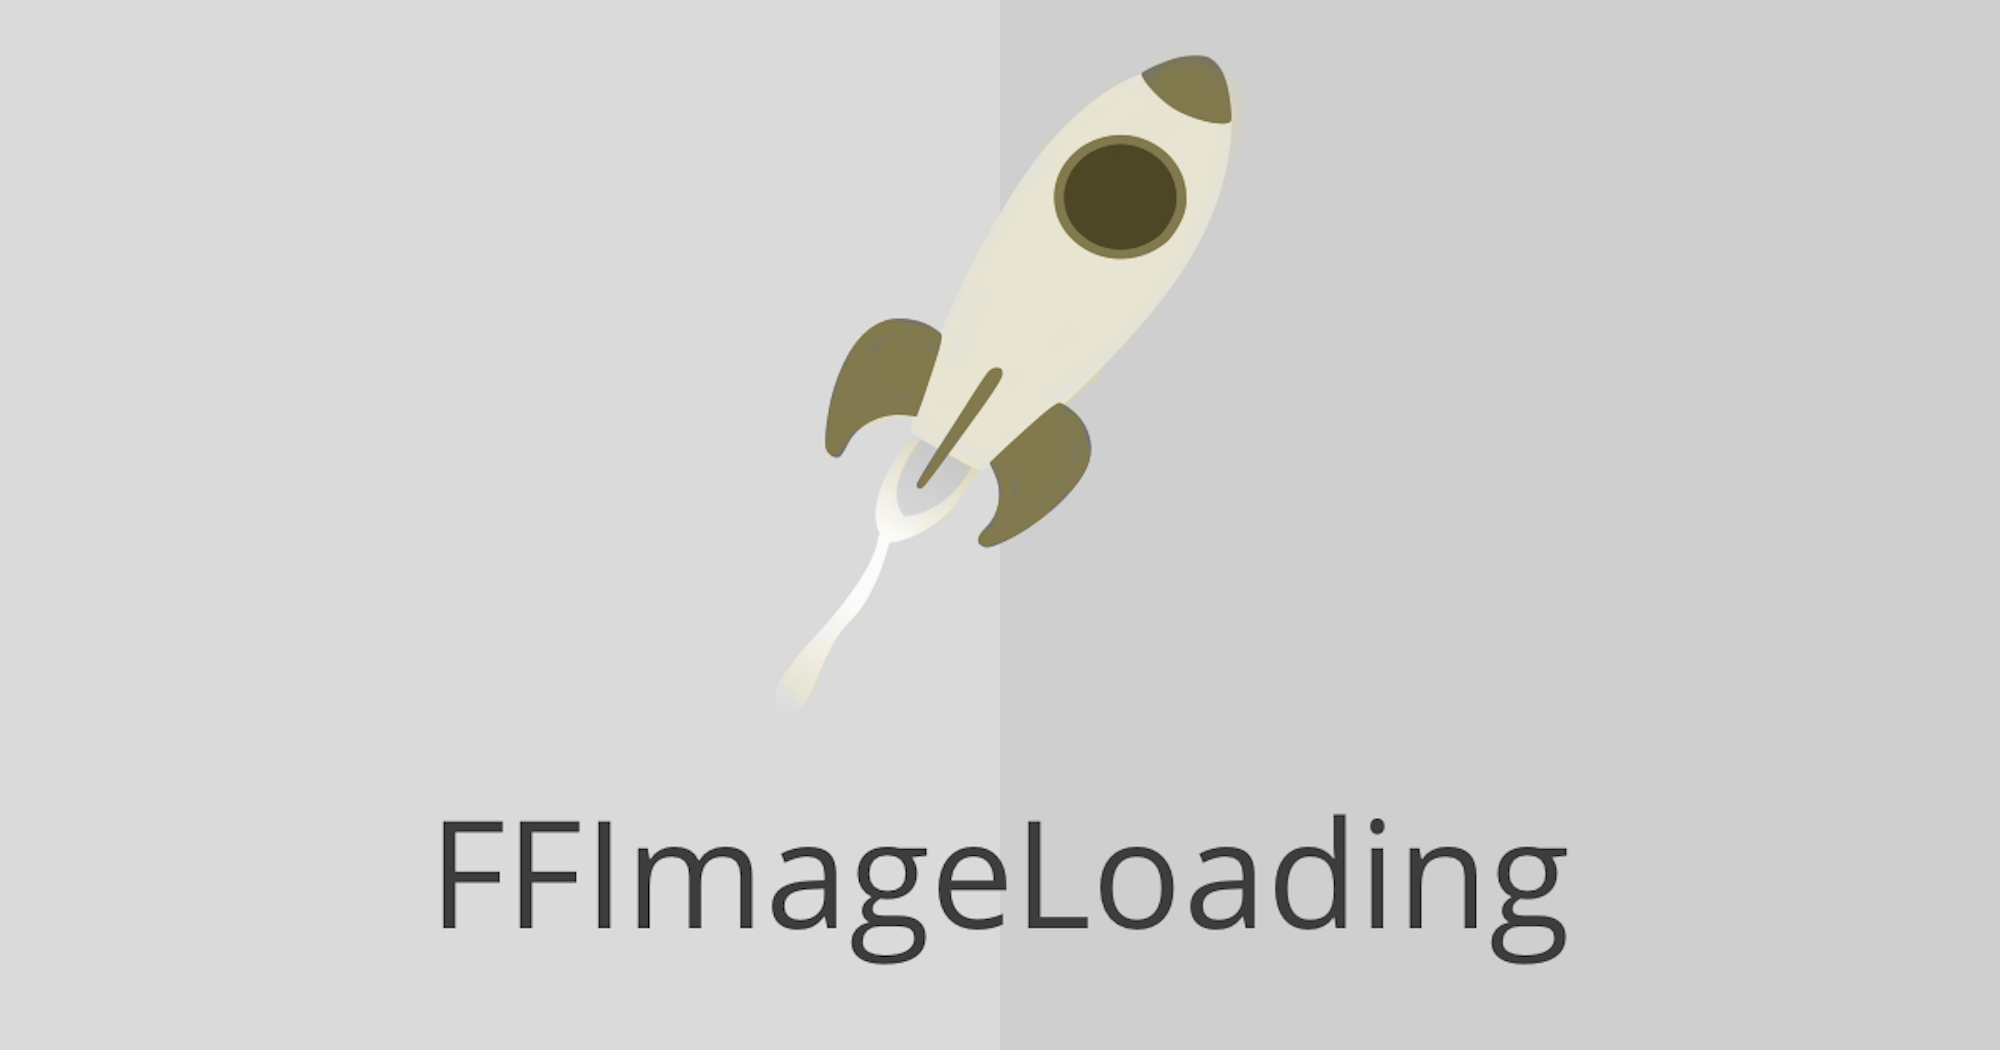 Using FFImageLoading in Xamarin Forms for caching and optimizing images